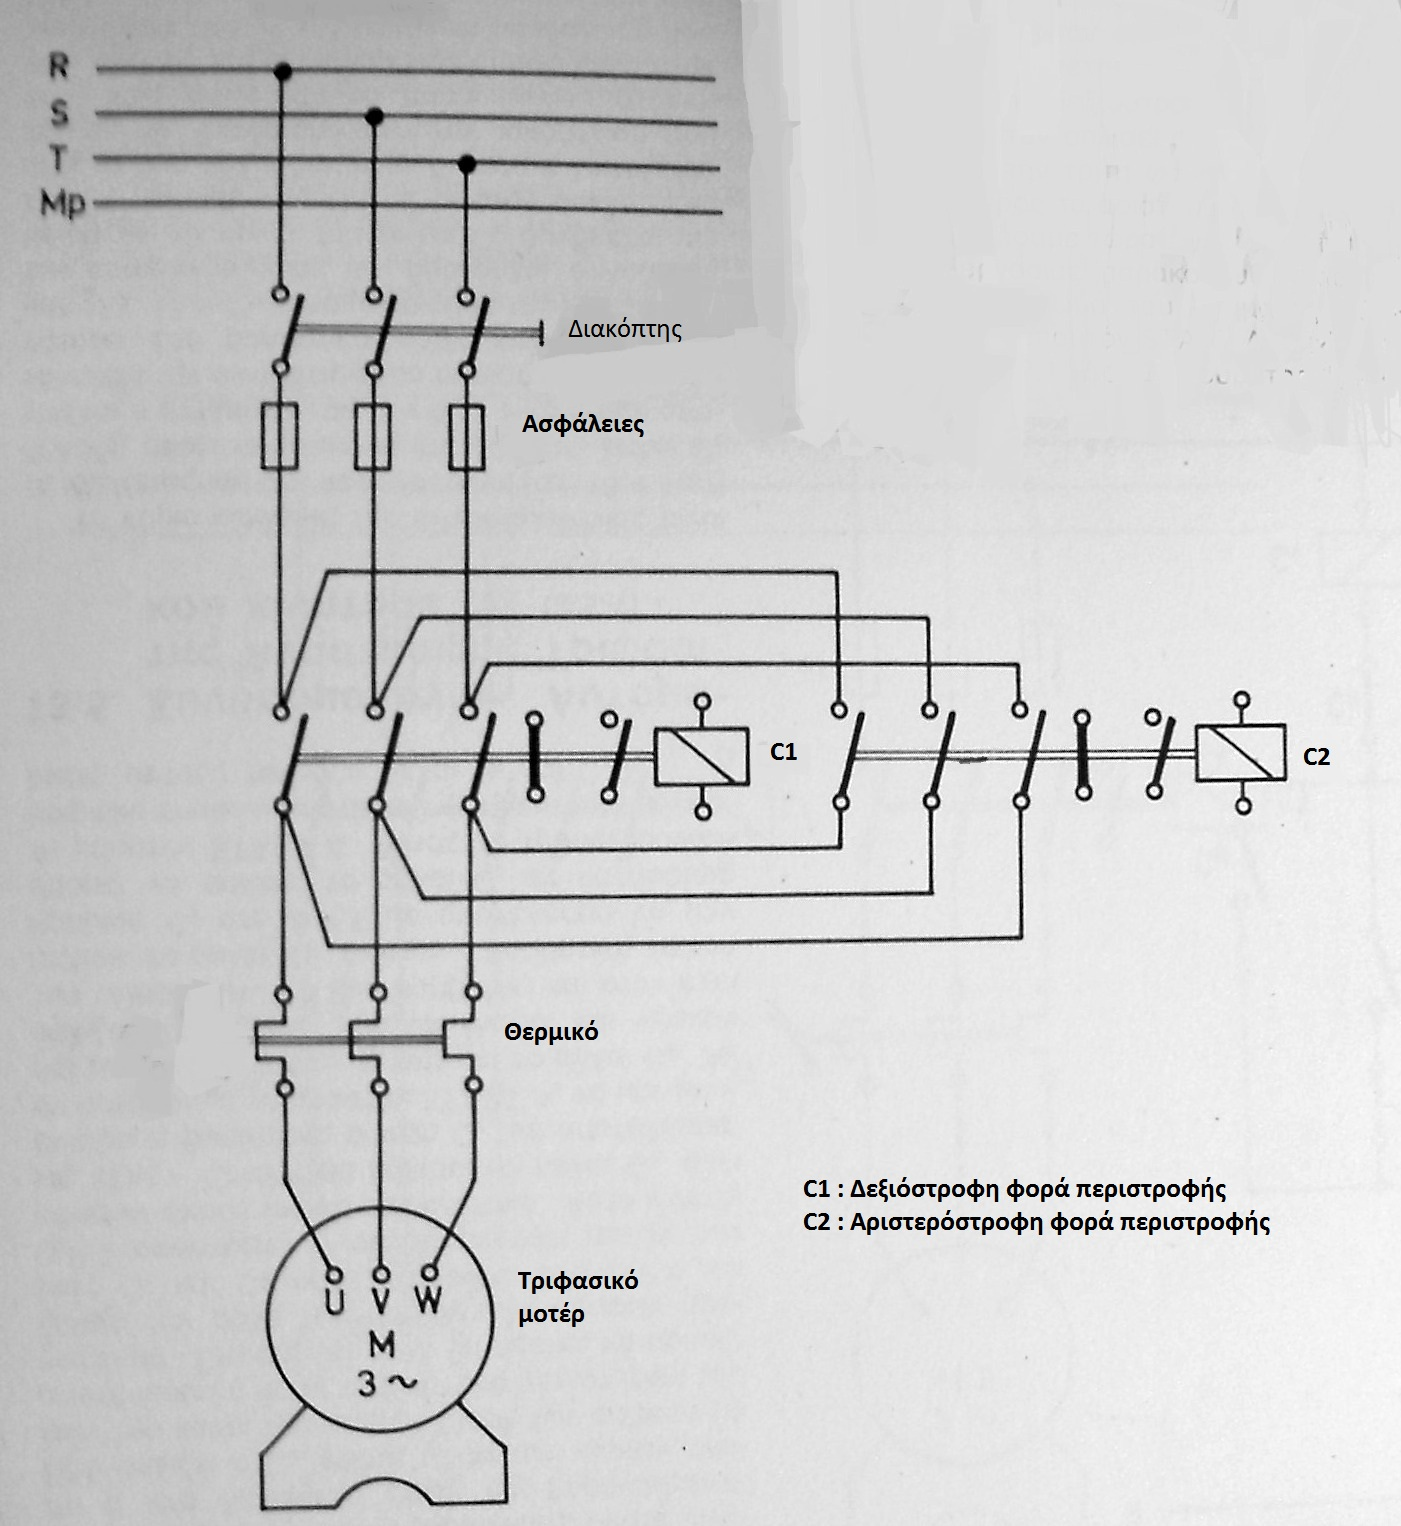 Electrician Wiring Diagram For Power Circuit Clockwise And 3 Phase Counterclockwise Rotation Three Motor